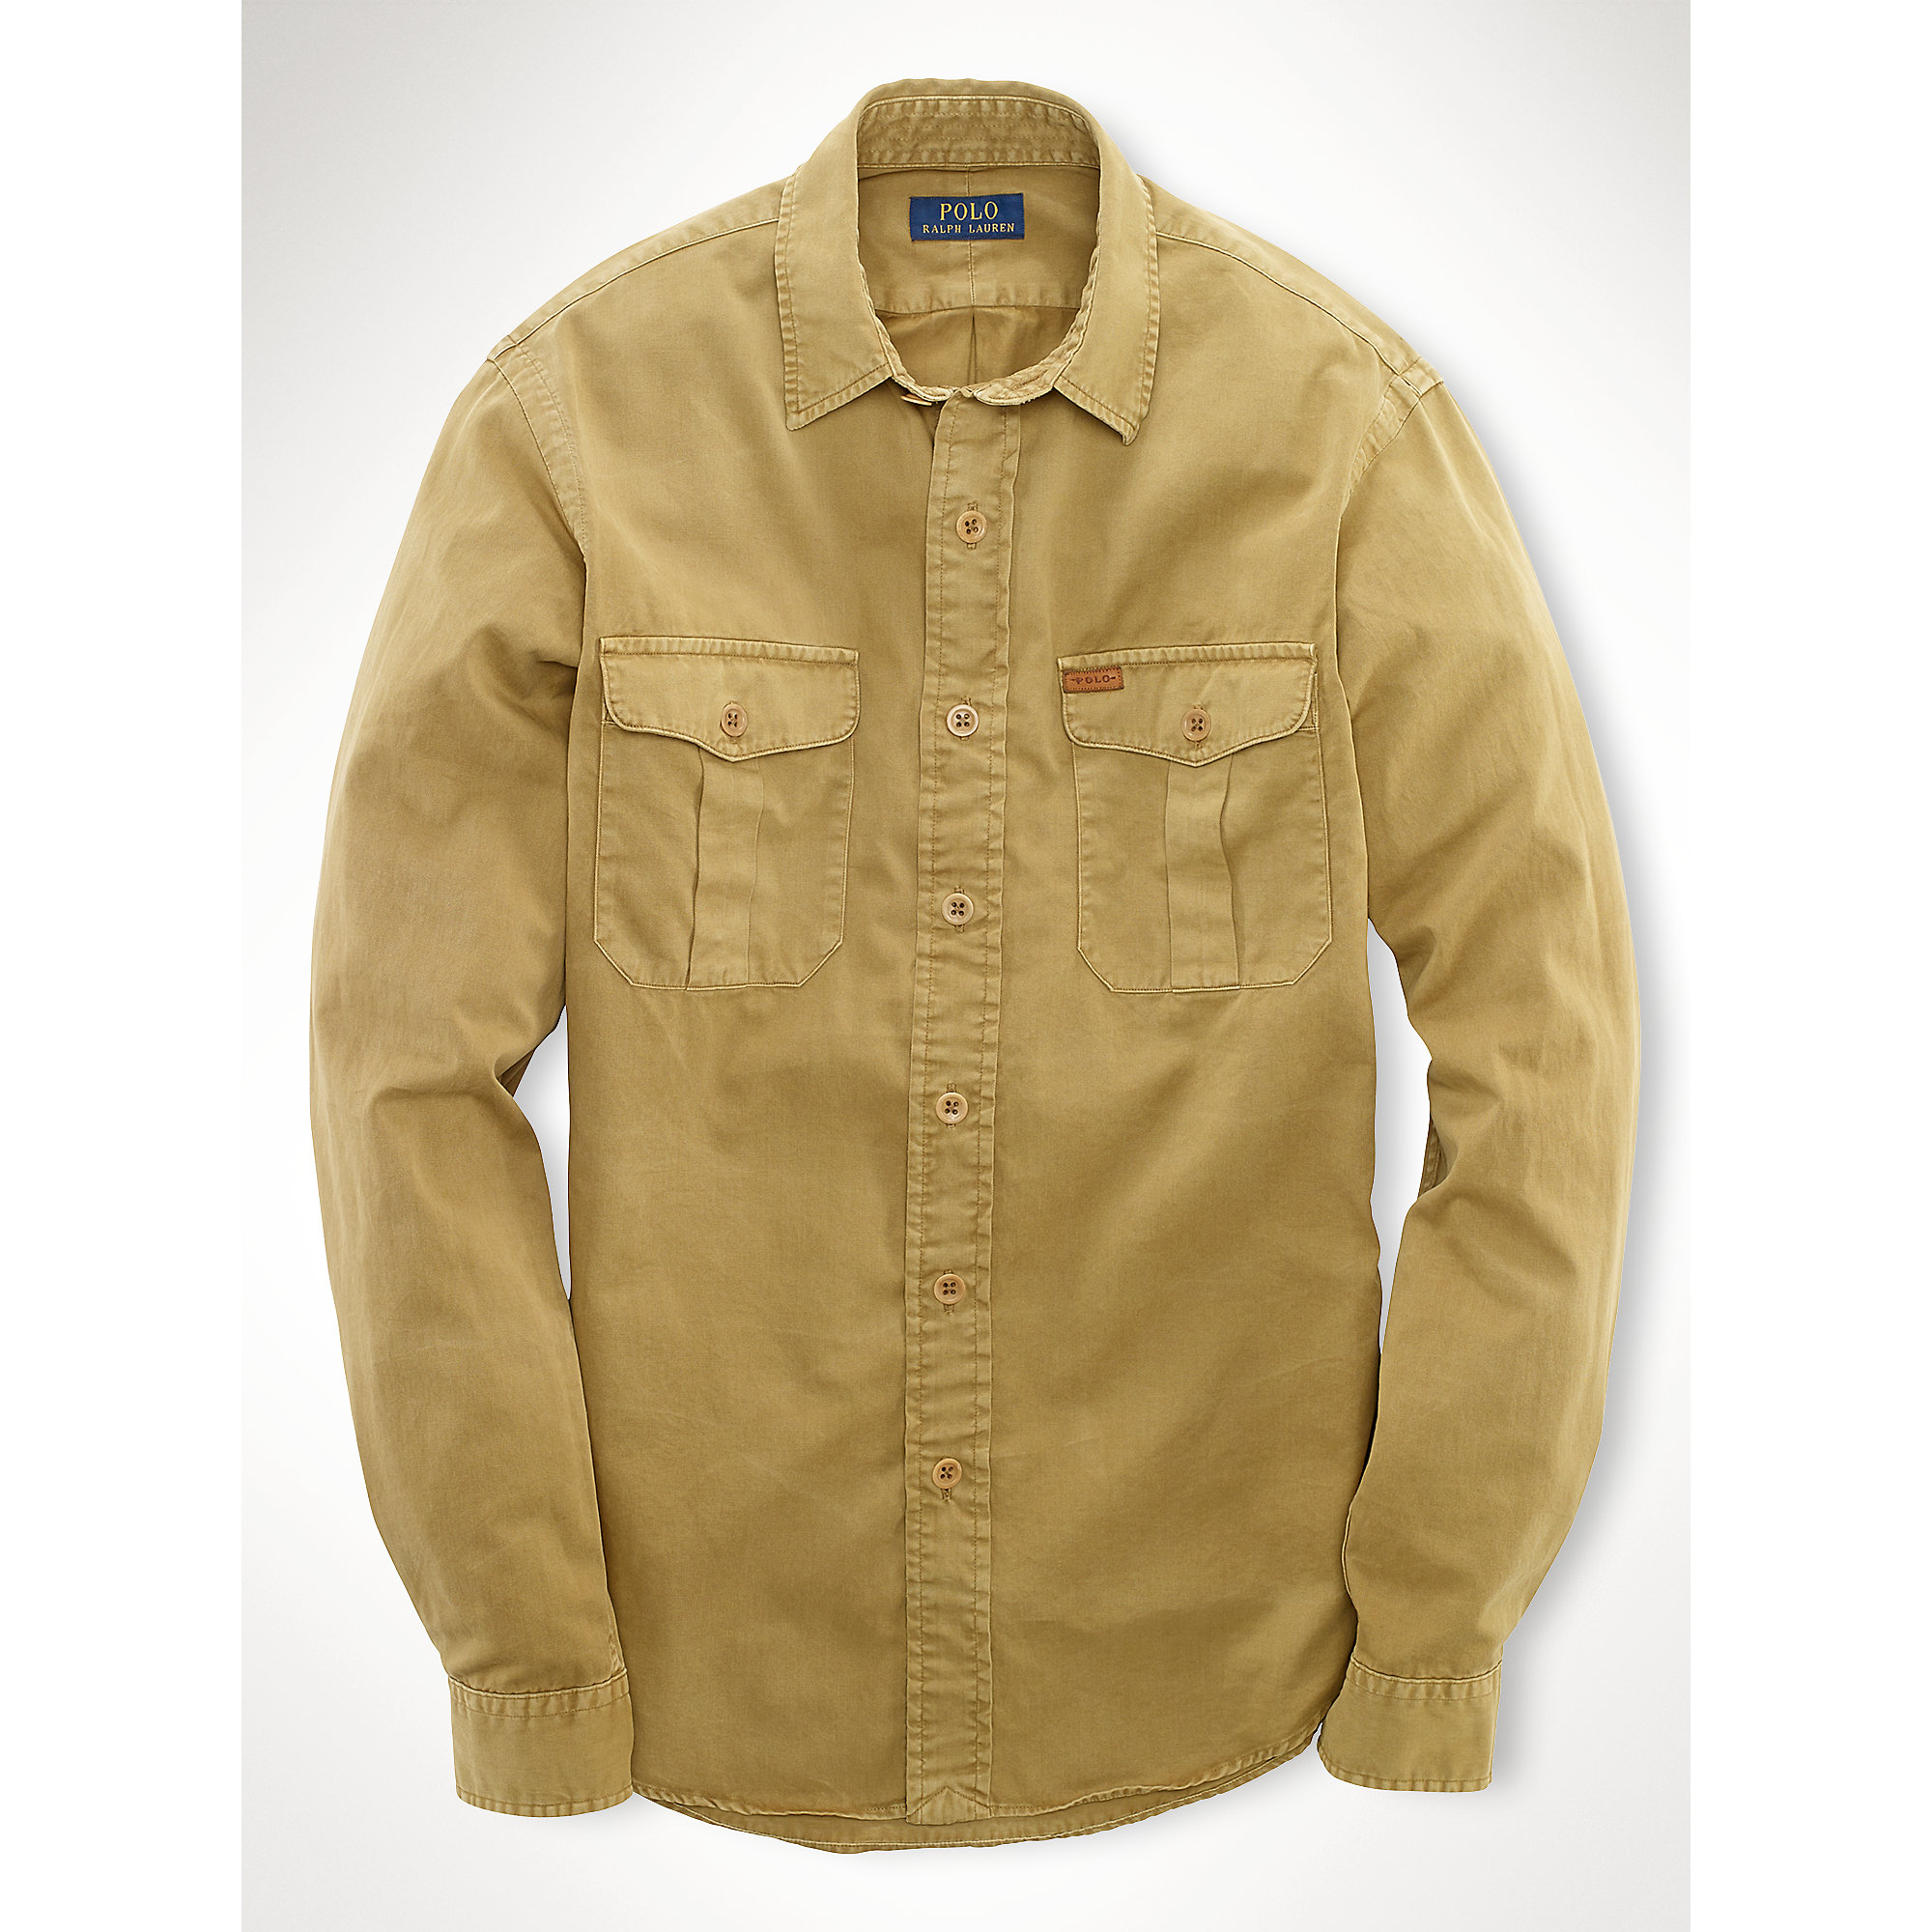 Polo Ralph Lauren Chino Military Shirt In Brown For Men Lyst